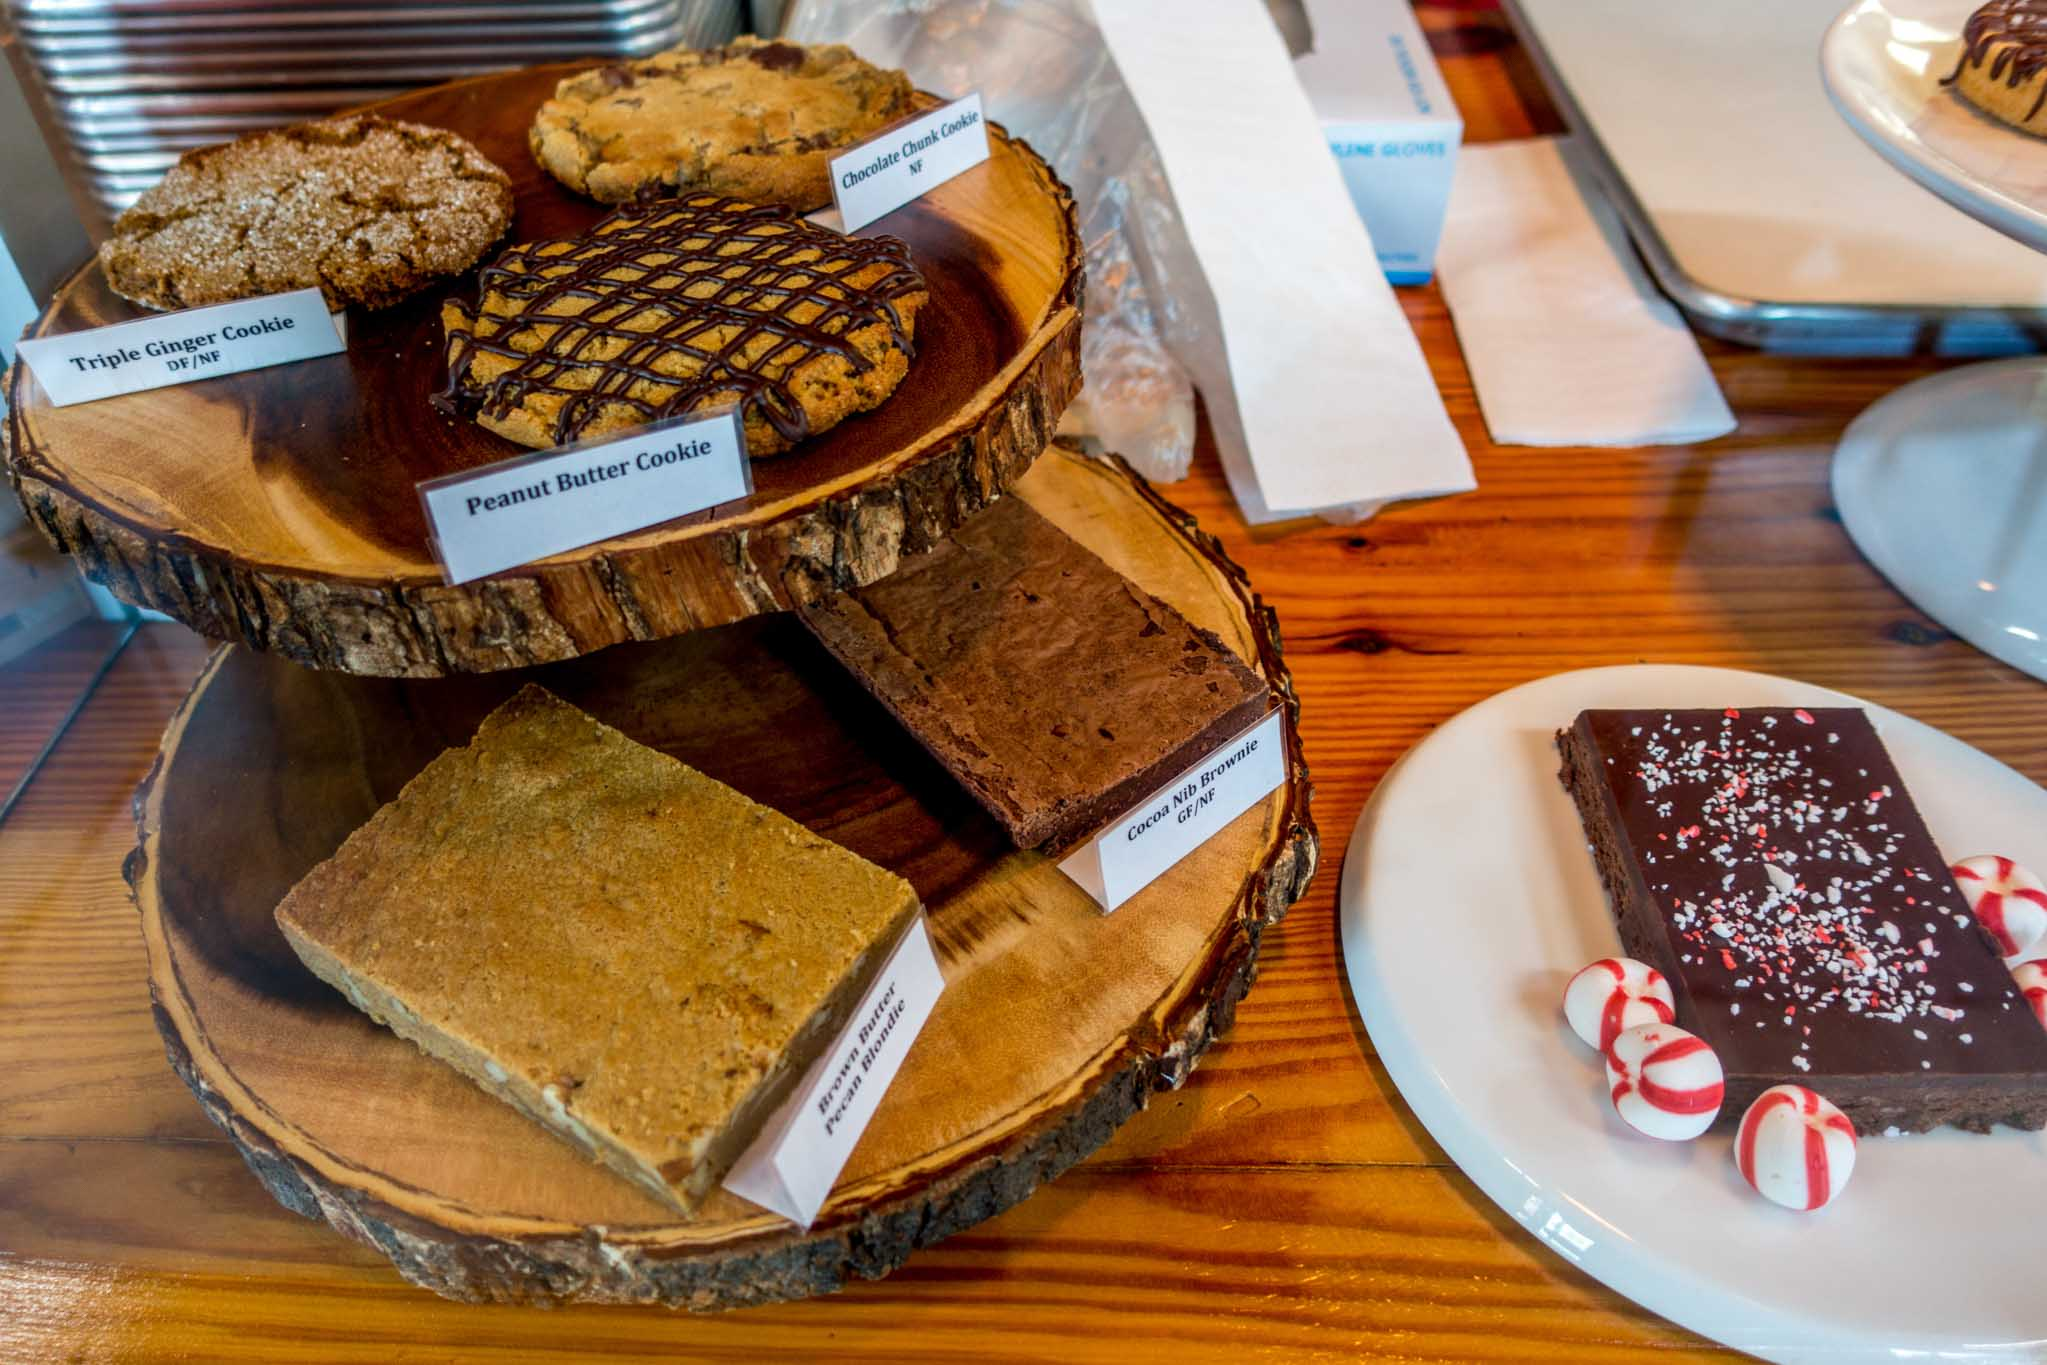 Cookies and brownies for sale at a chocolate store